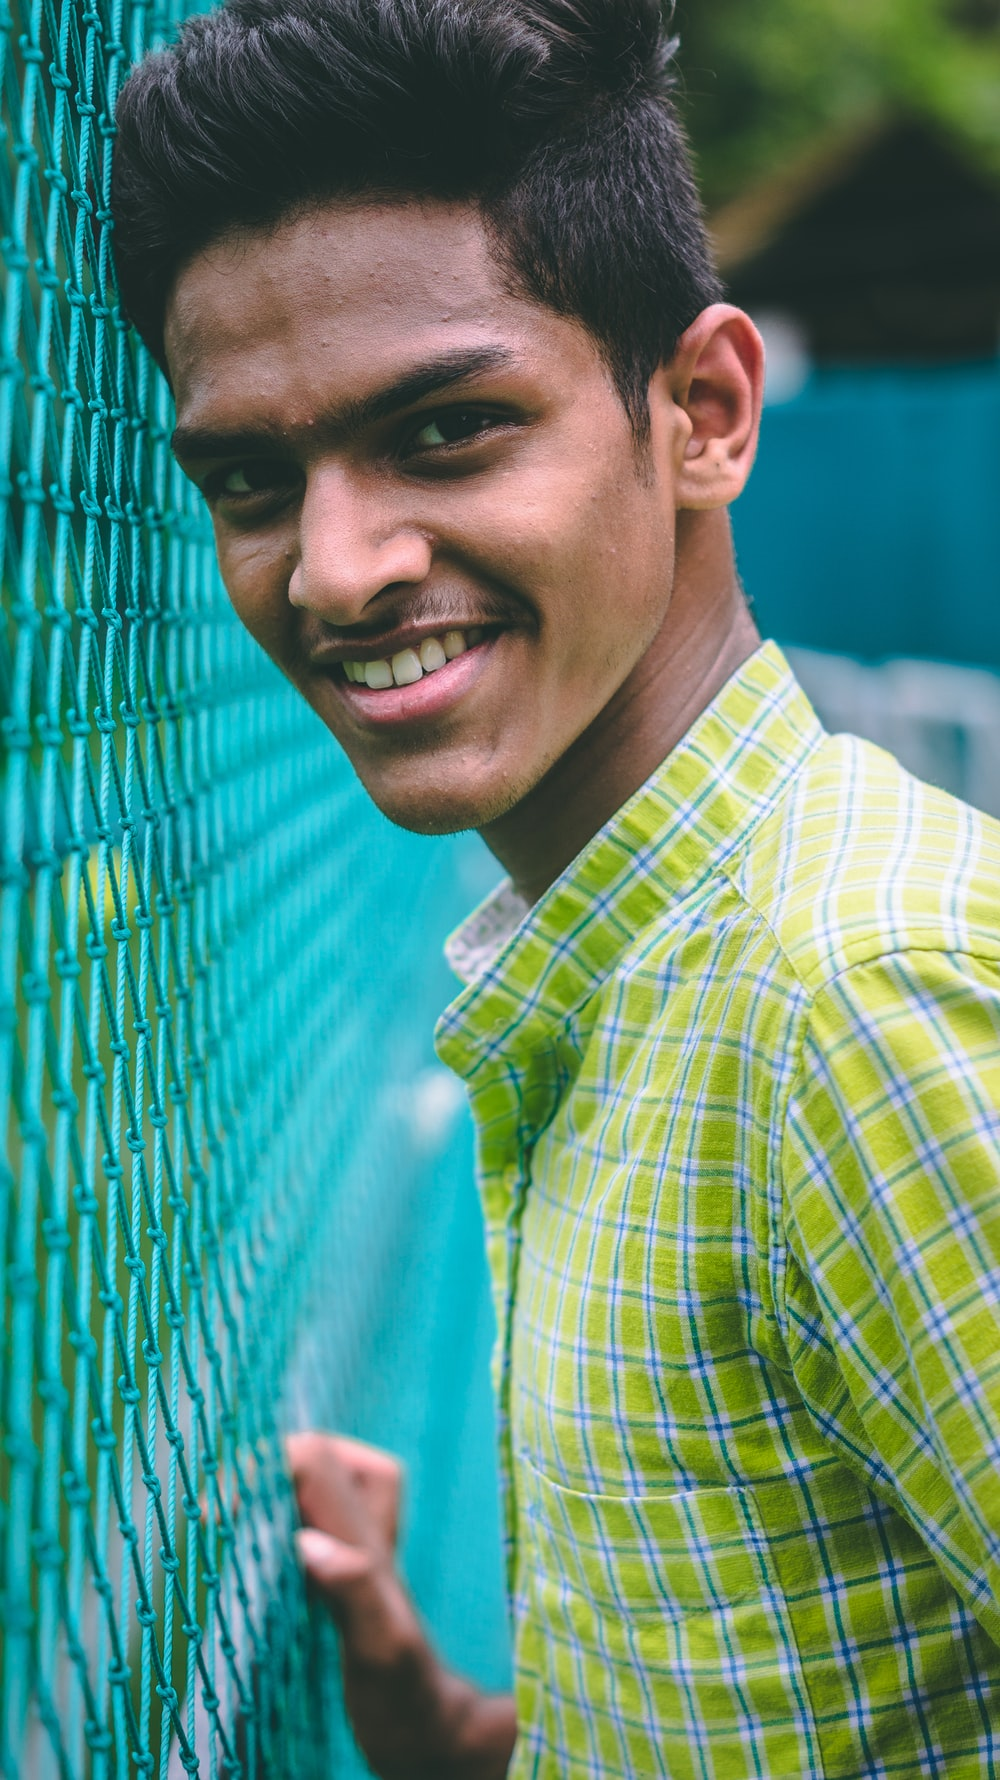 500+ Indian Man Pictures [HD] | Download Free Images on Unsplash